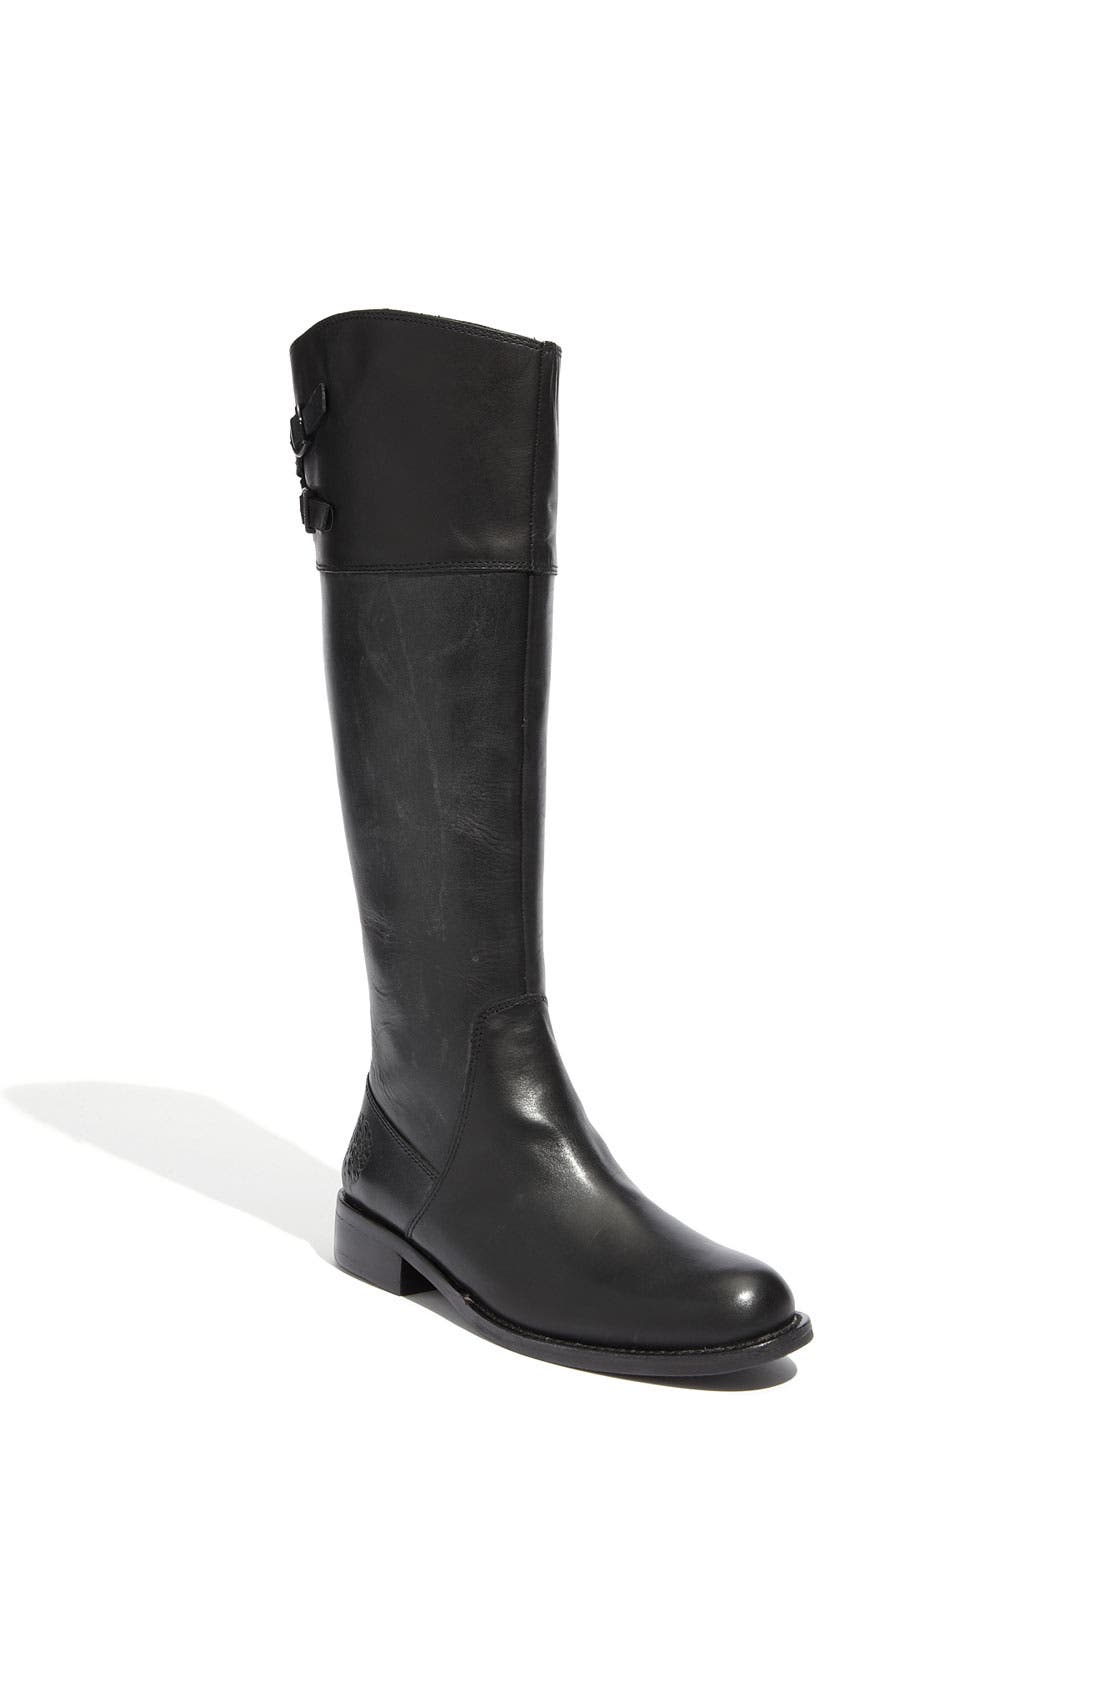 Alternate Image 1 Selected - Vince Camuto 'Keaton' Boot